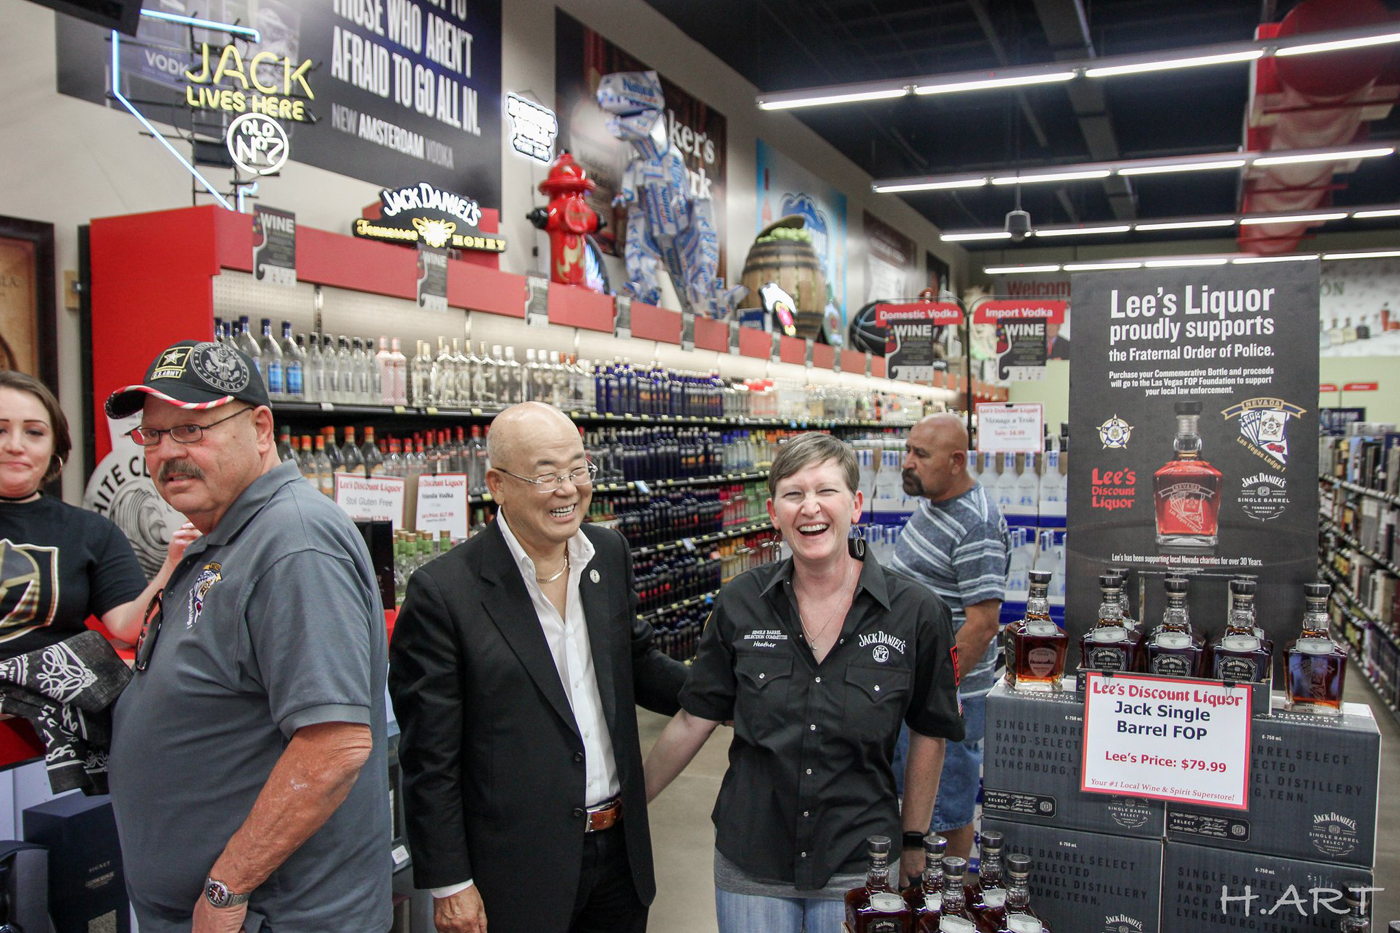 Heather smiling with the owner of Lee's Liquor